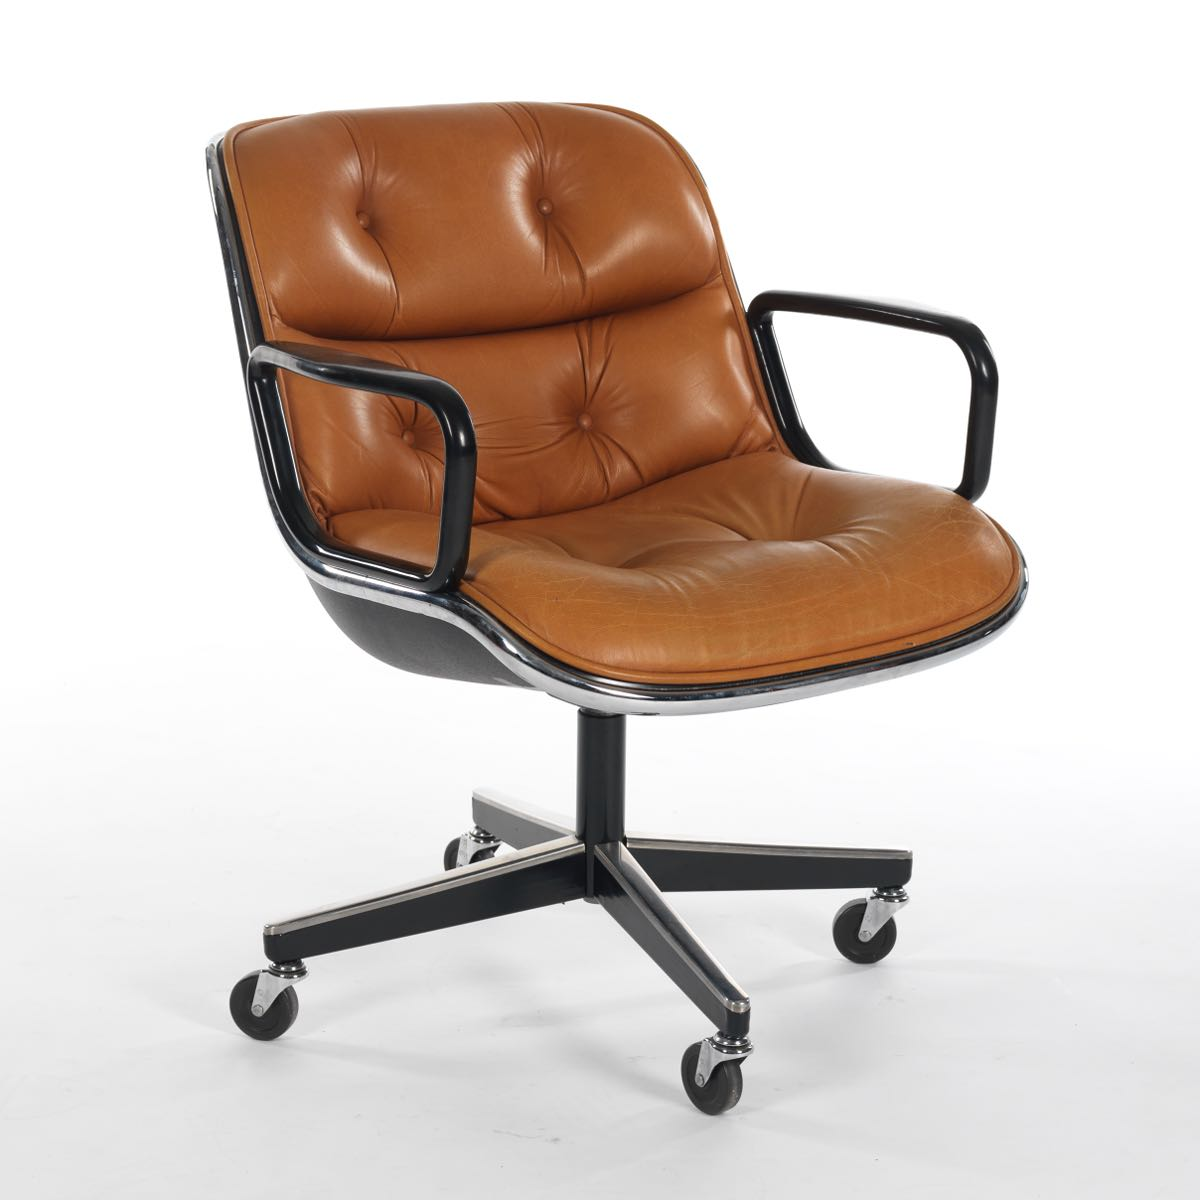 Knoll Pollock Executive Chair With Arms In Brown Leather